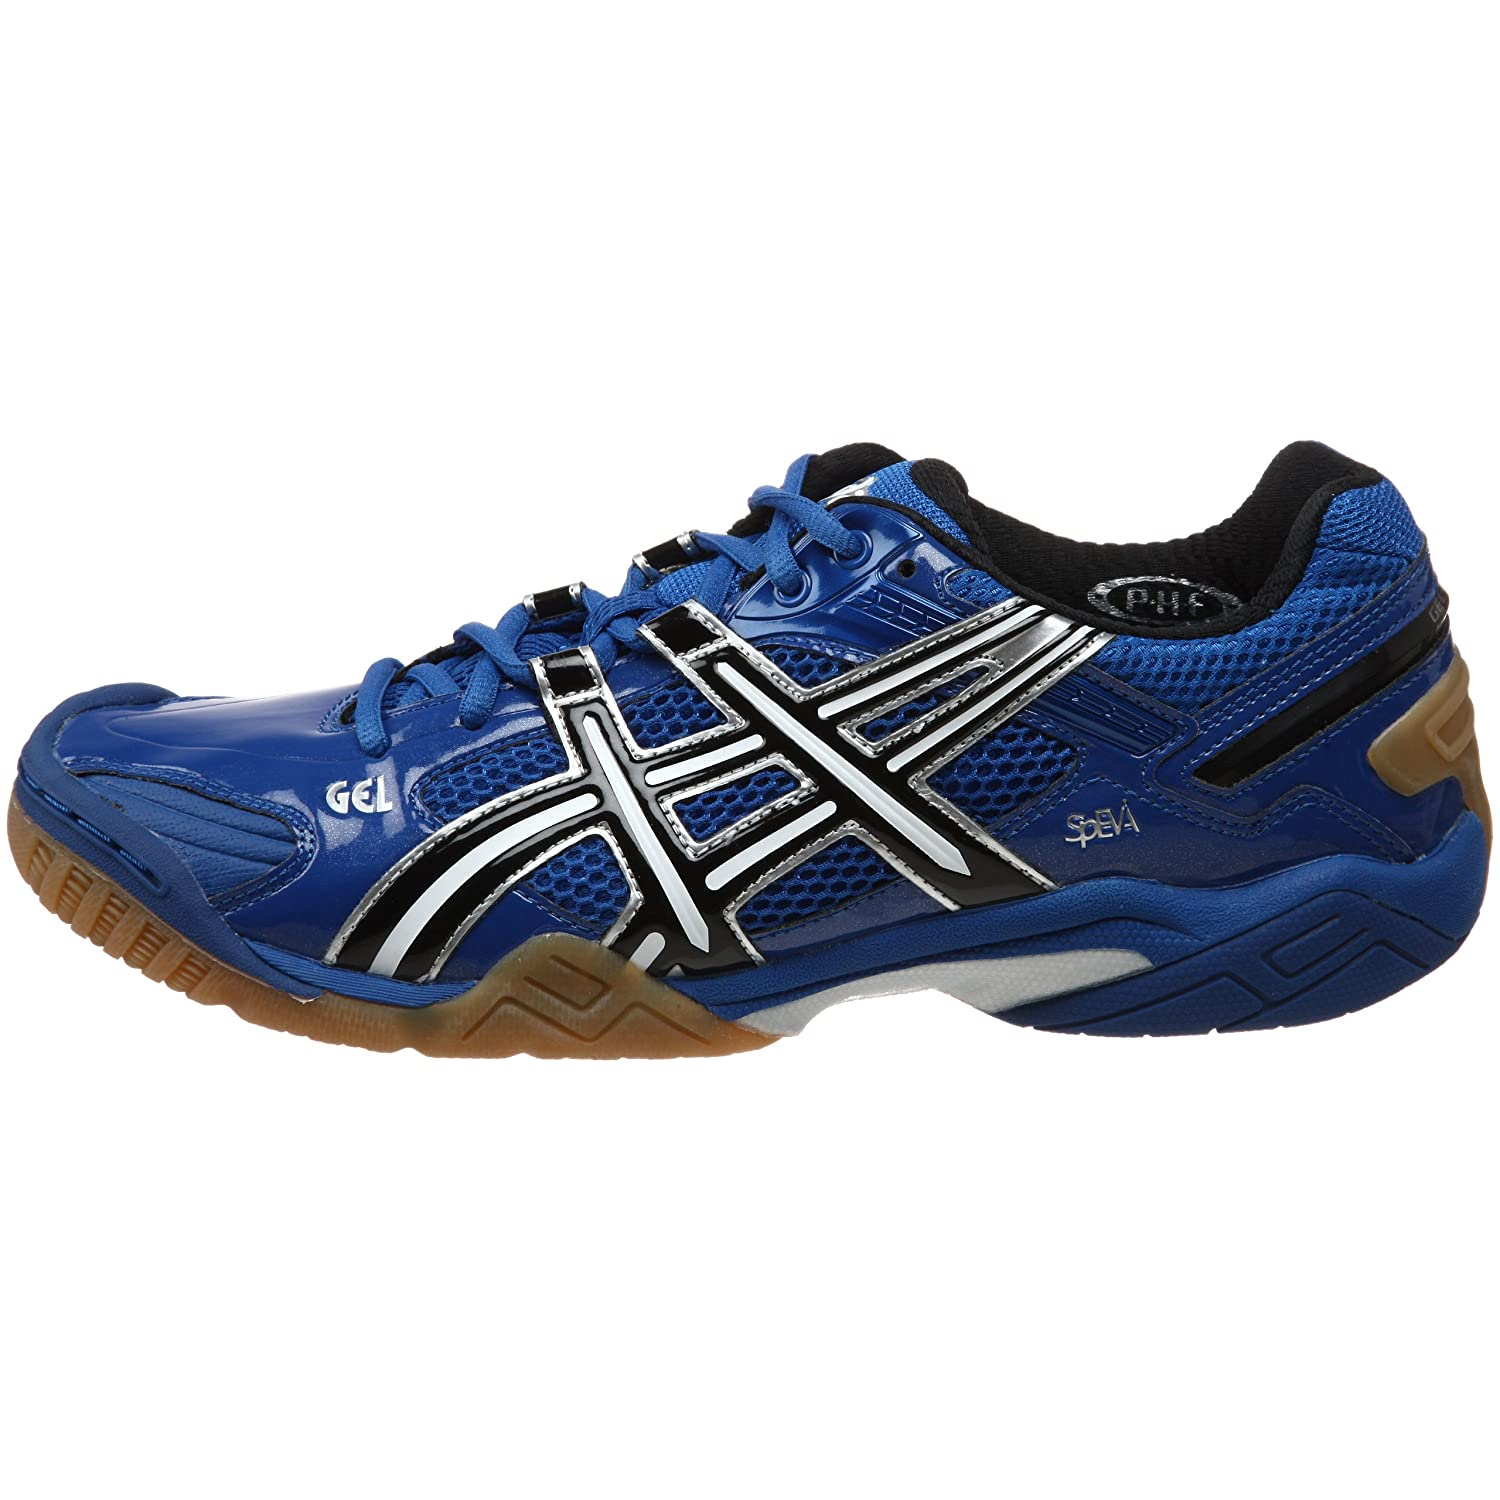 62553fb3c13b Asics Gel-domain 2 Volleyball Shoe  Amazon.co.uk  Shoes   Bags